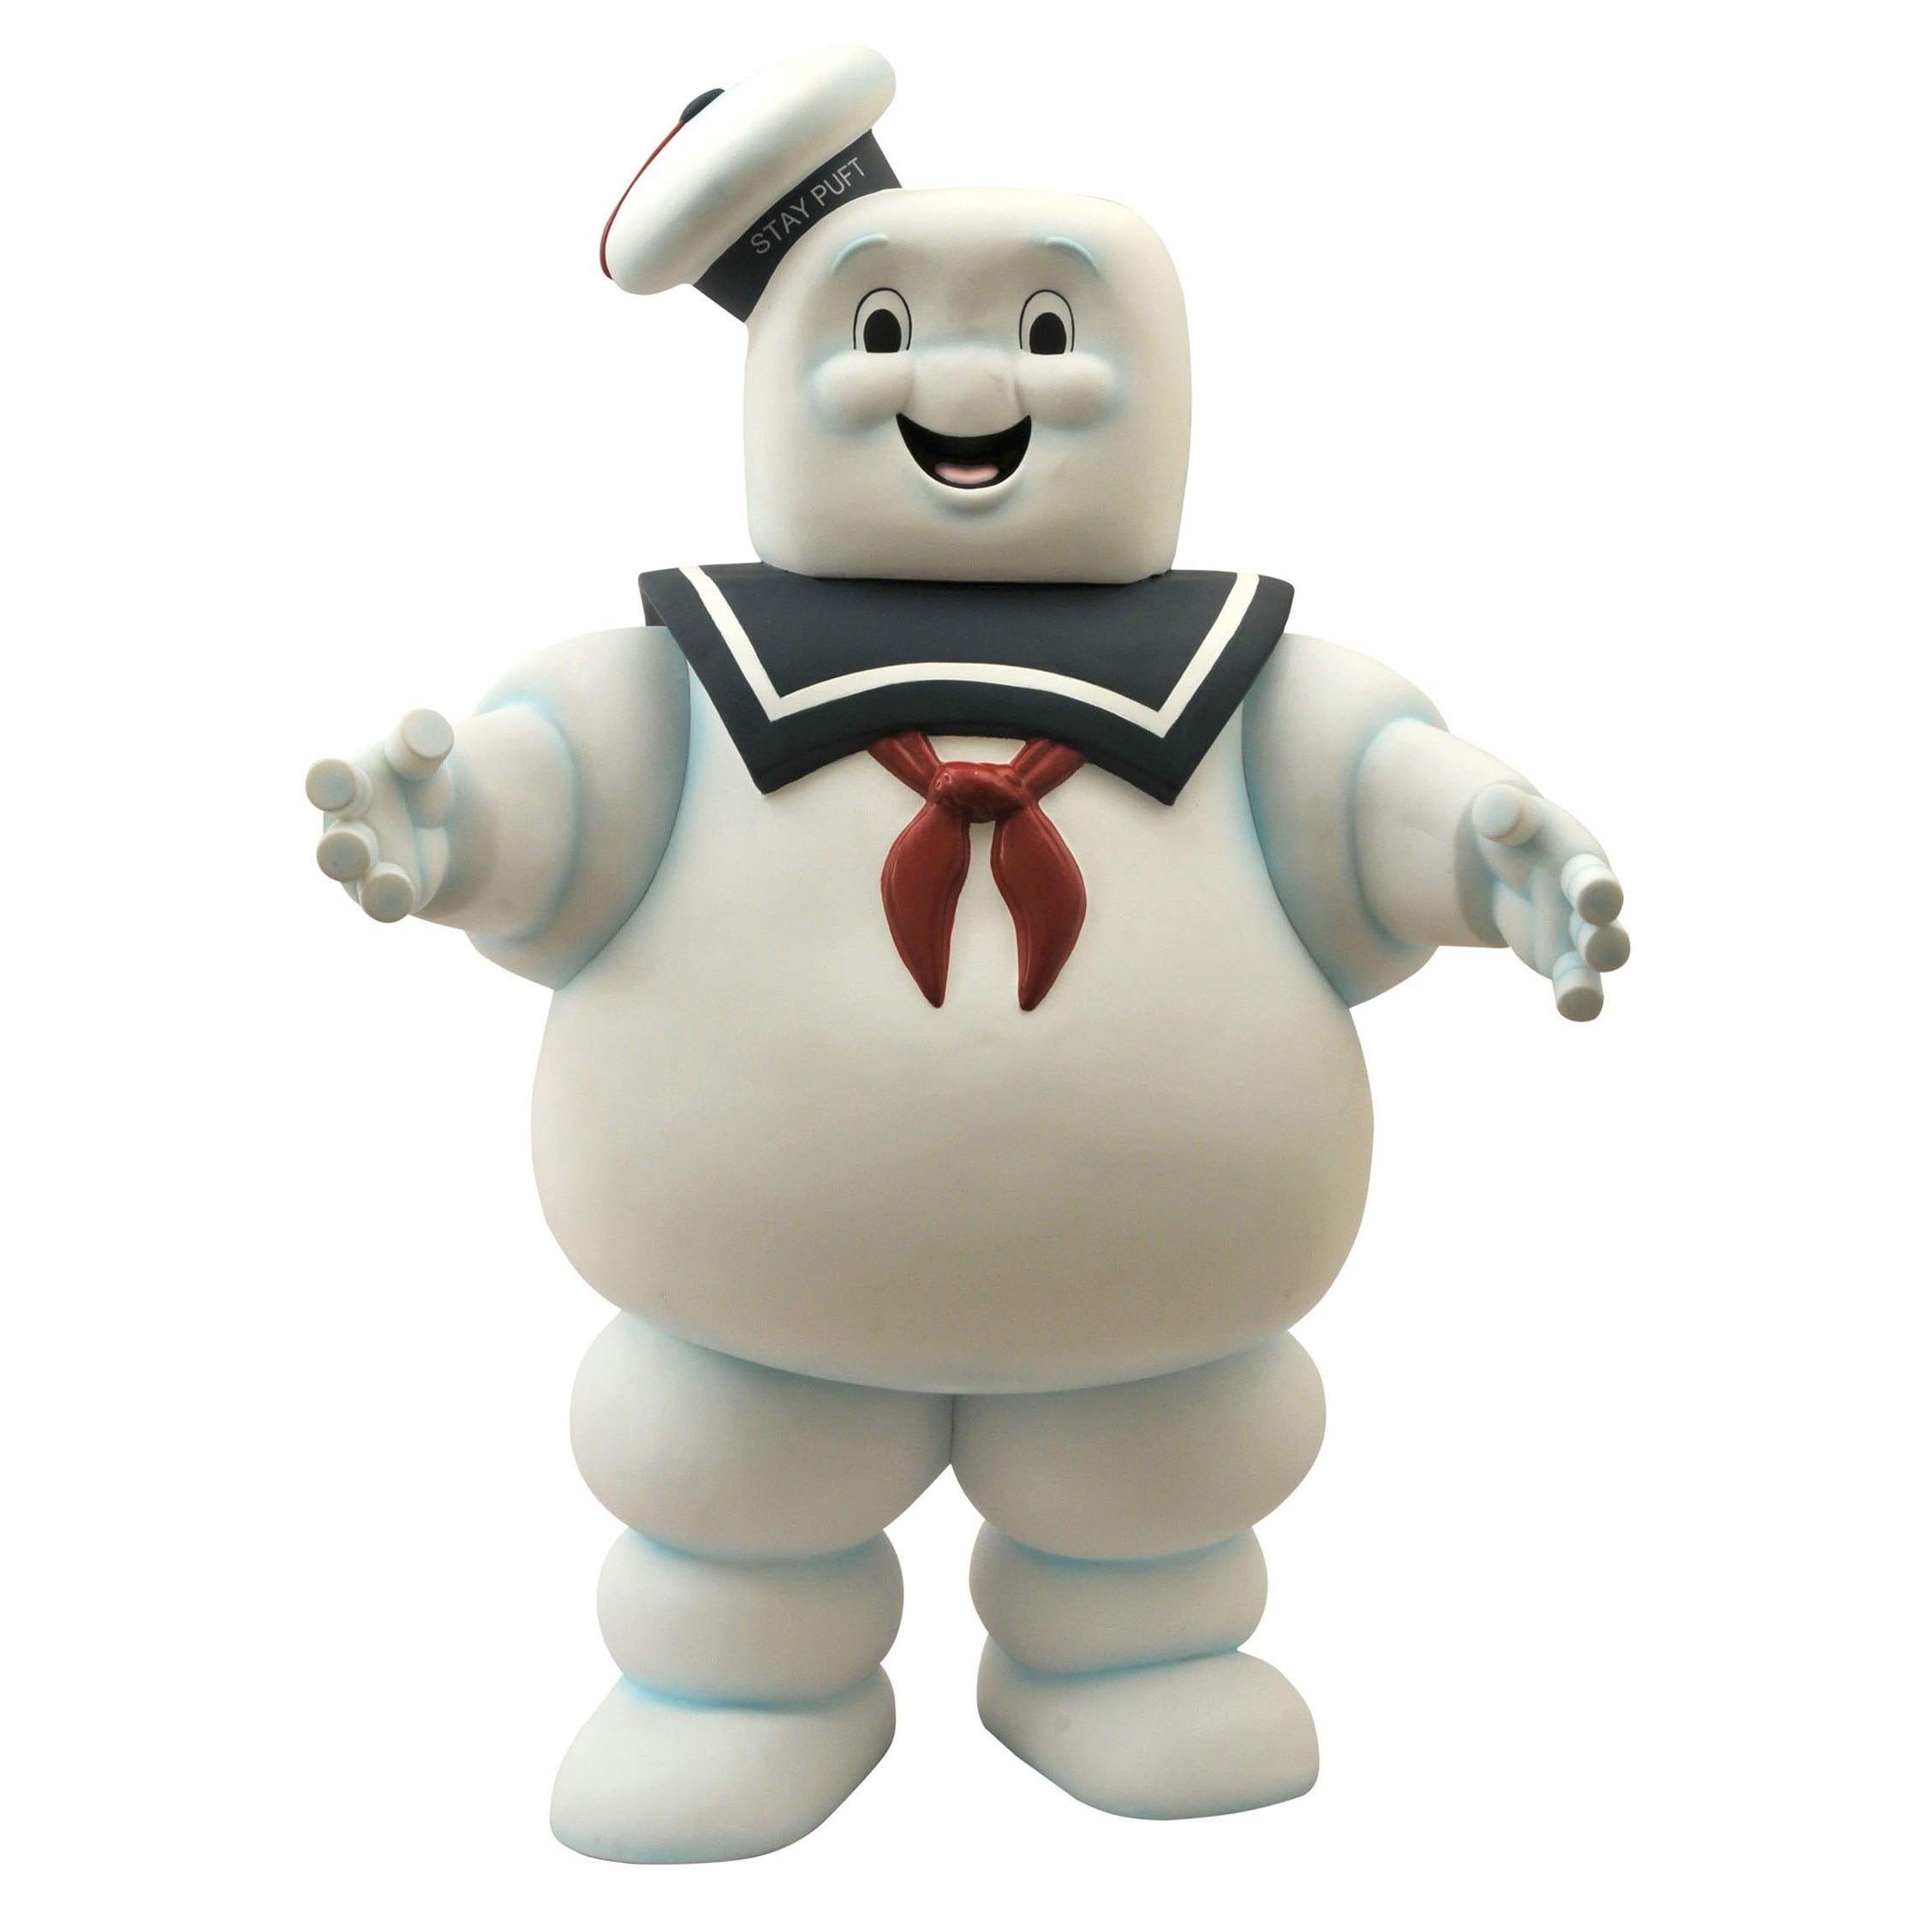 Diamond Toys Ghostbusters Stay Puft Marshmallow Man 24-Inch Bank [Regular]